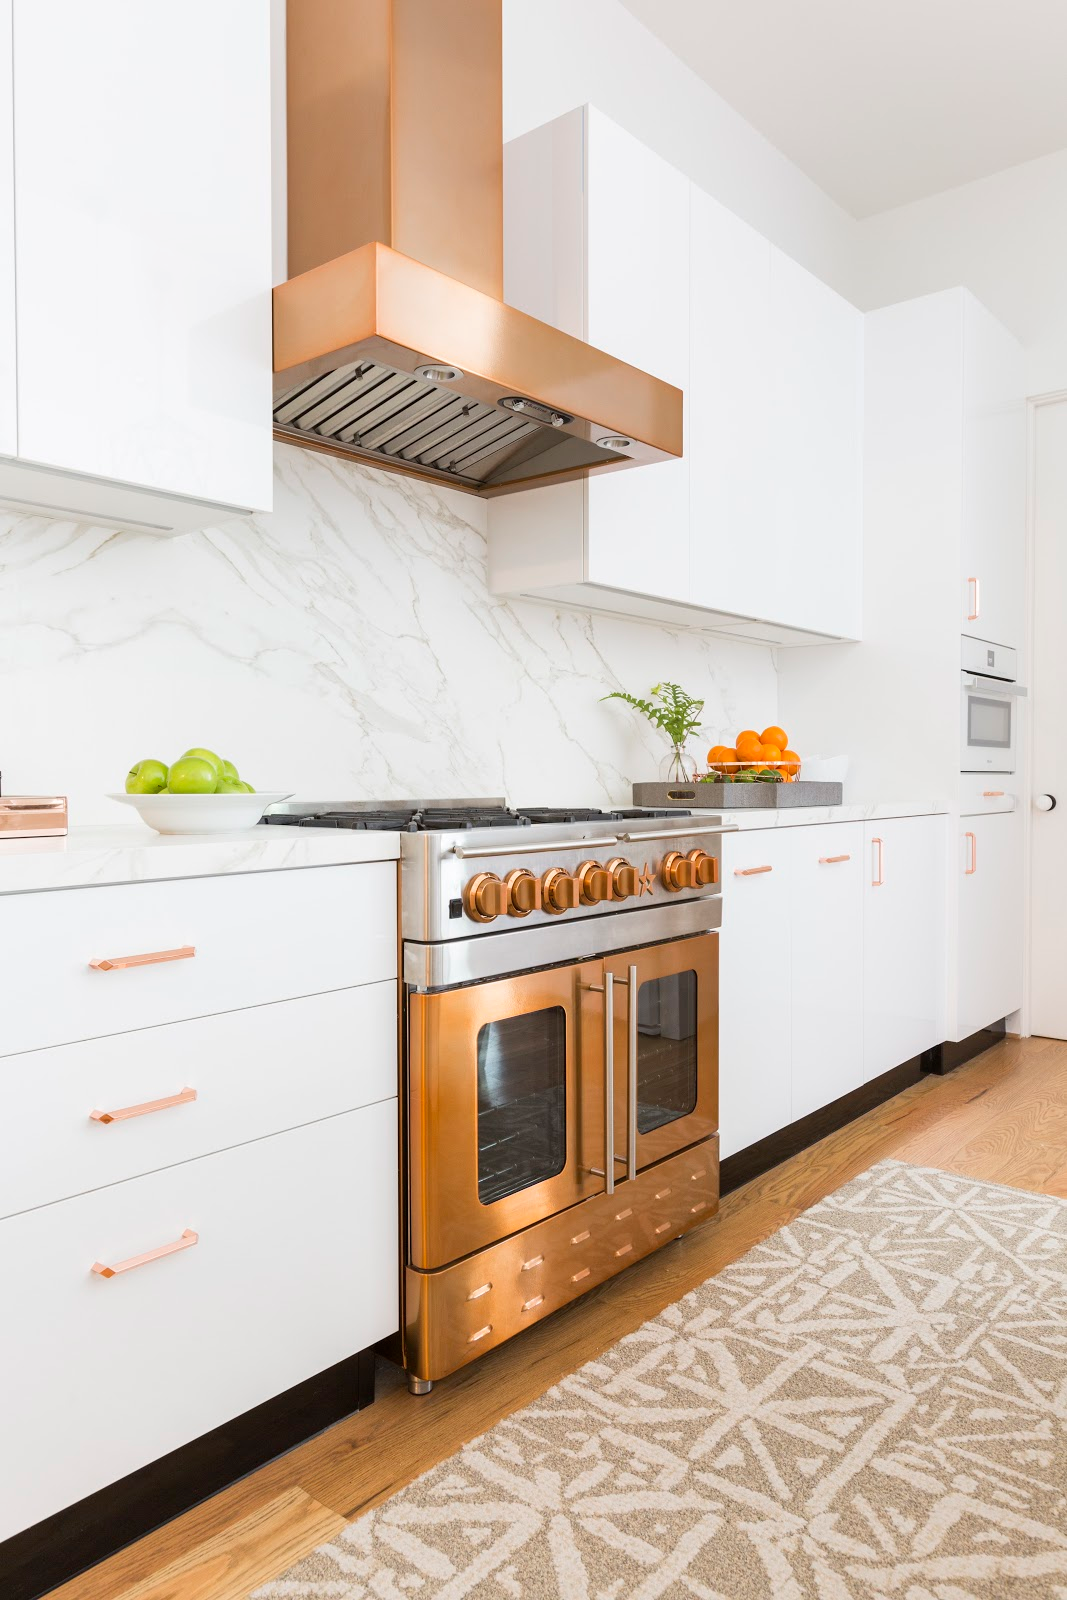 Gorgeous copper oven and vent hood with marble backsplash - Laura U Interior Design